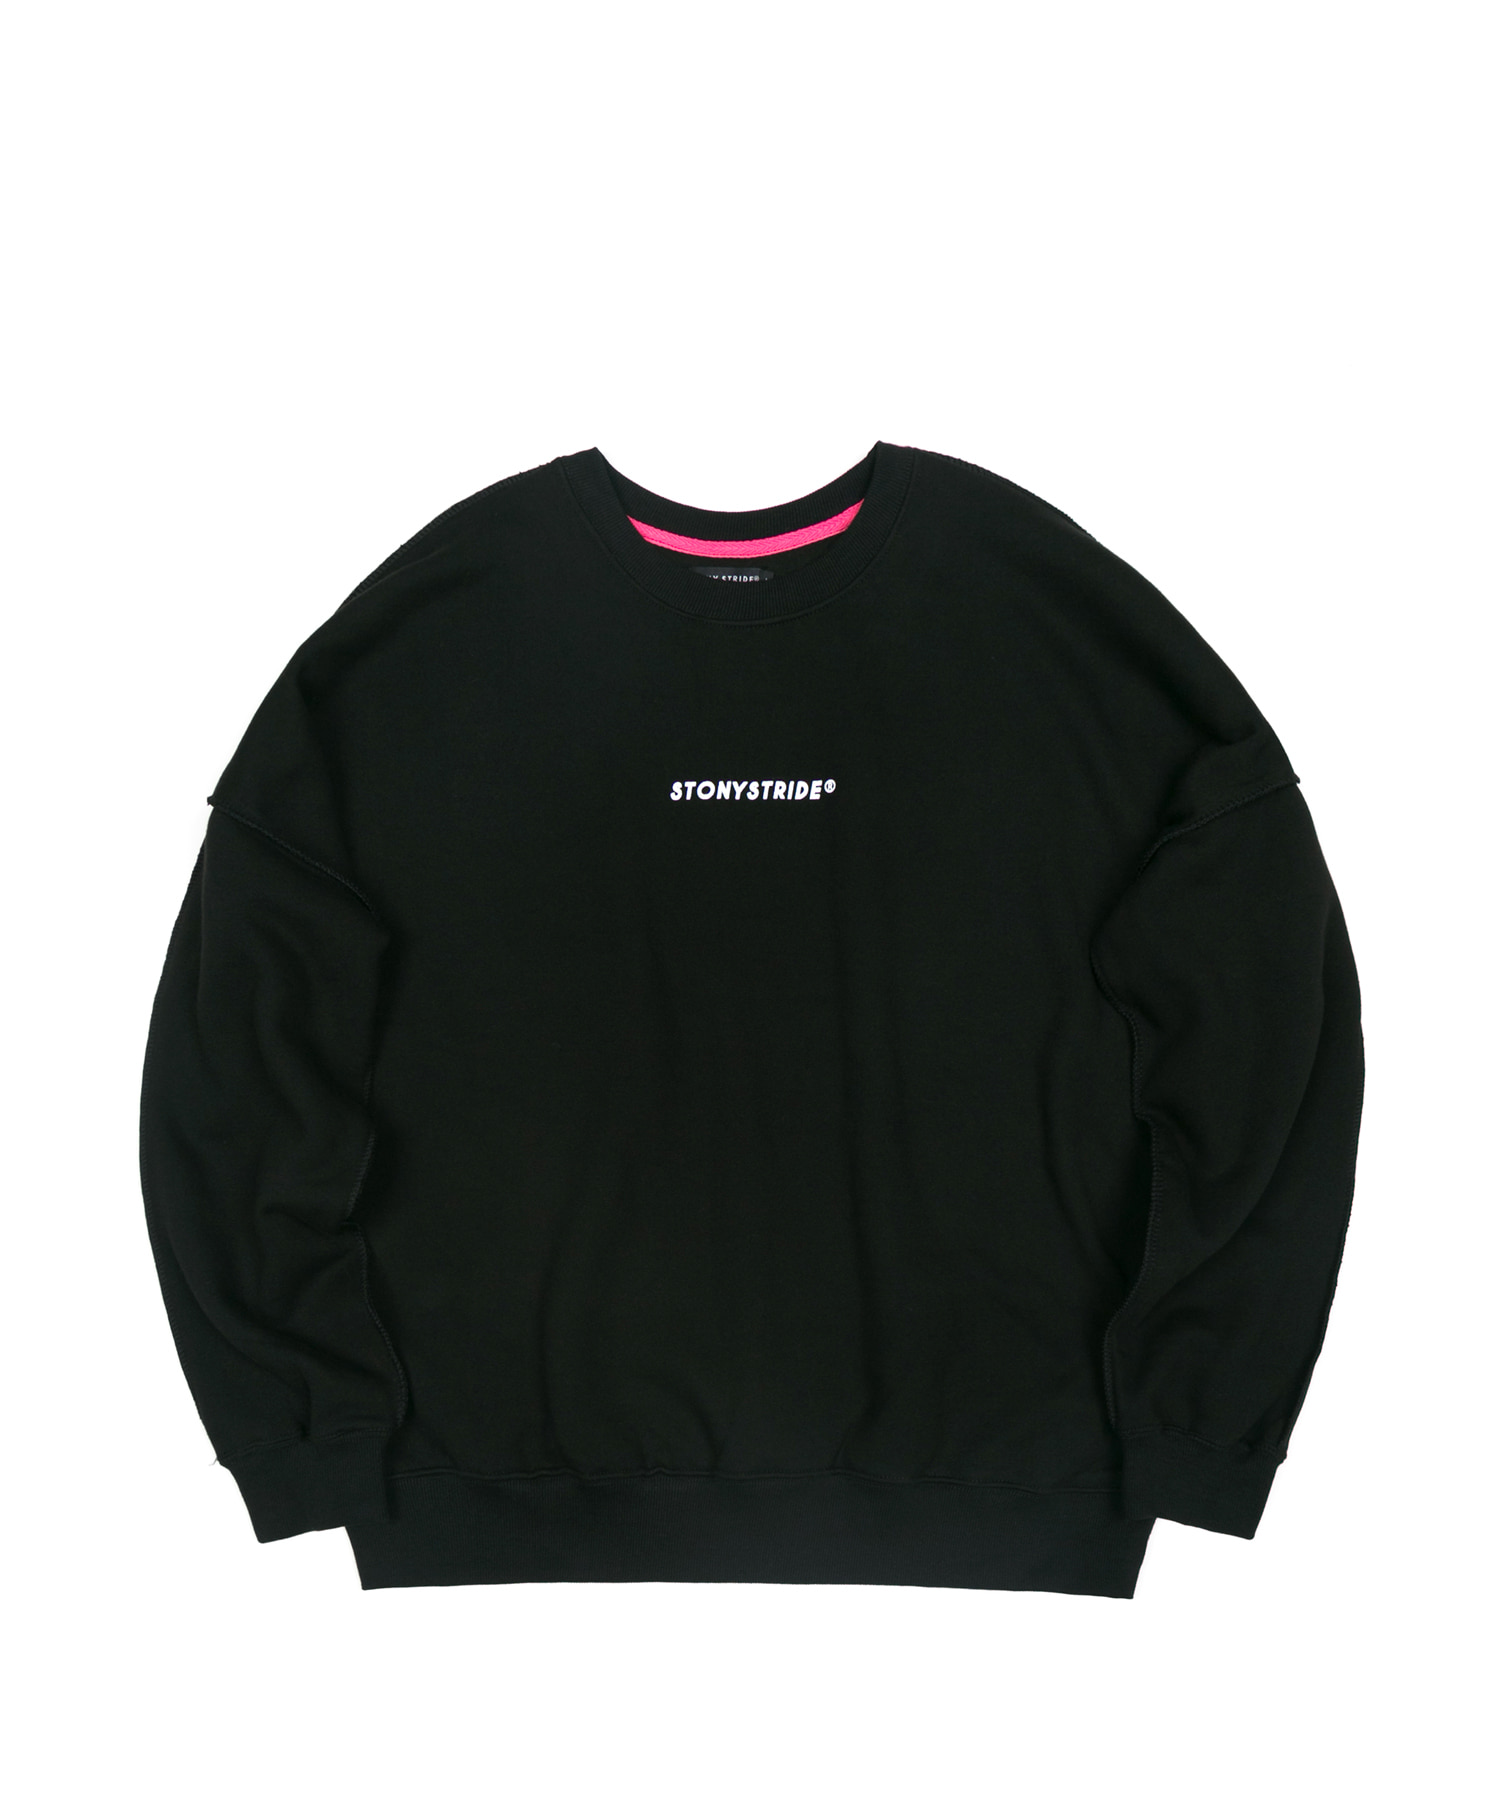 LOGO CREWNECK - BLACK